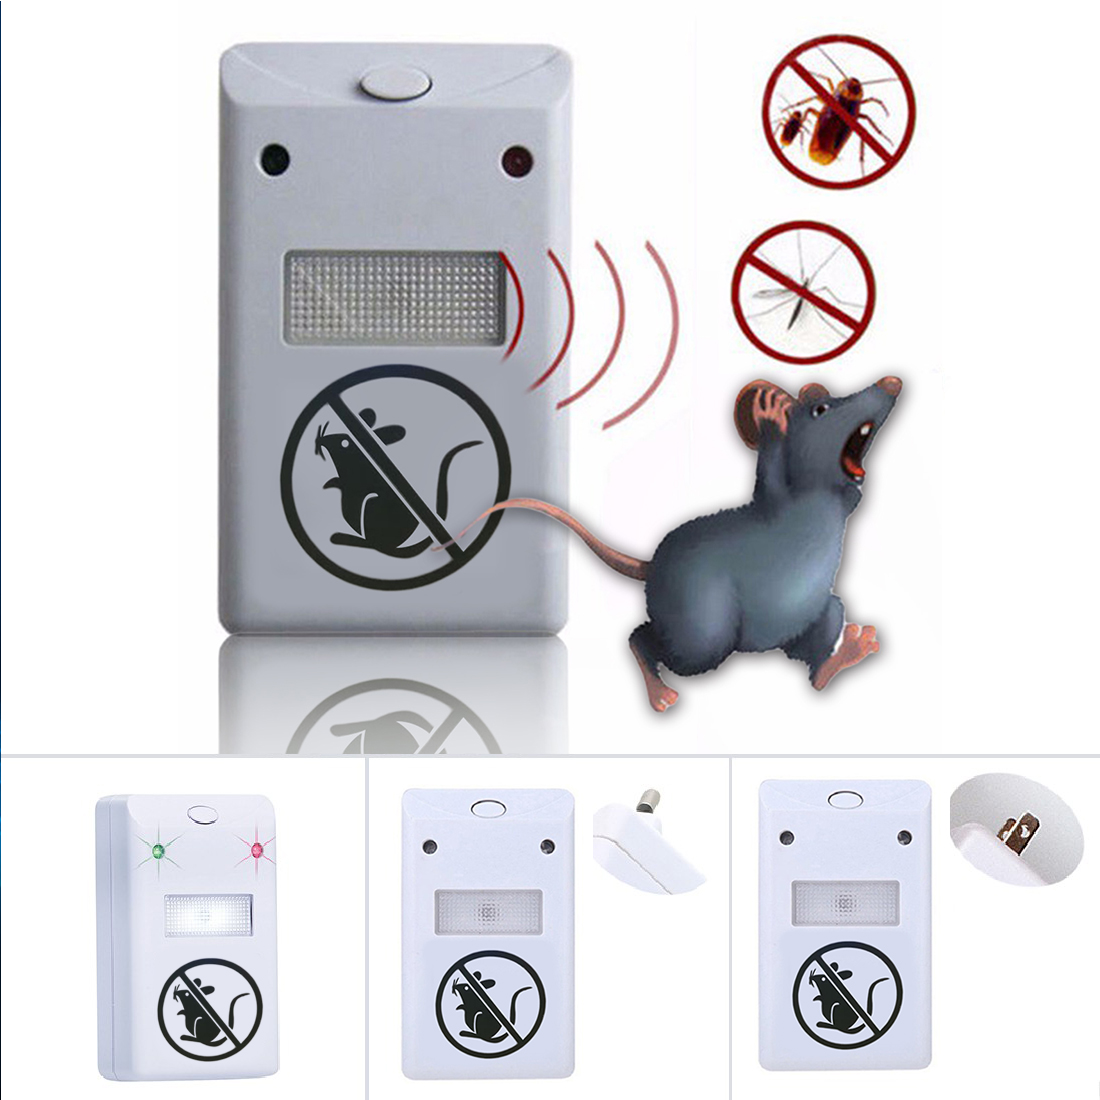 1pc Useful Electronic Ultrasonic Anti Mosquito Pest Mouse Killer Magnetic Repeller for Ants Mosquito Mouse US Plug1pc Useful Electronic Ultrasonic Anti Mosquito Pest Mouse Killer Magnetic Repeller for Ants Mosquito Mouse US Plug